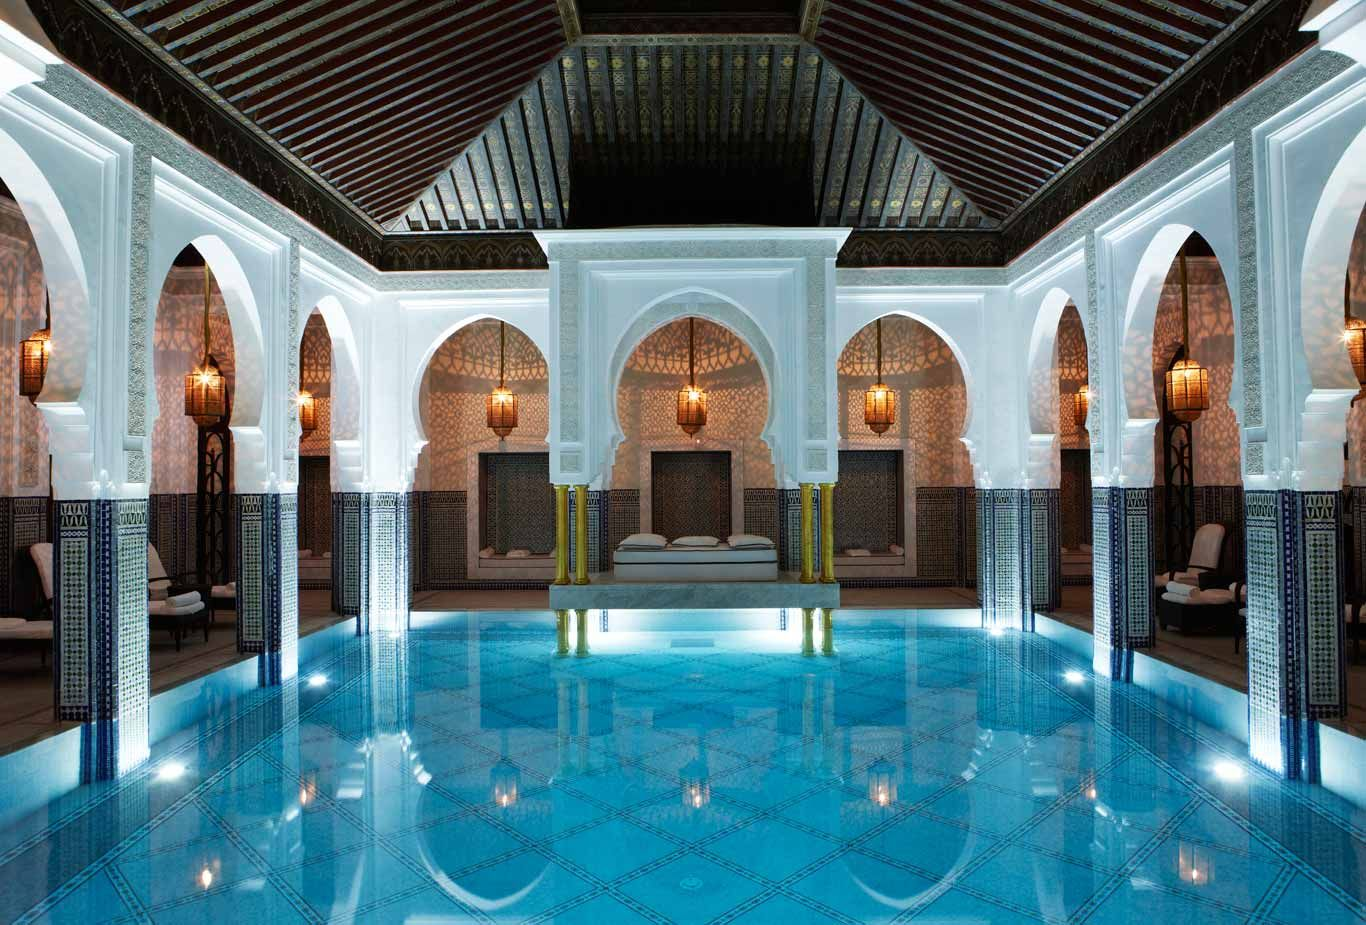 La mamounia luxury 5 star hotel marrakech morocco retreatyourself myworldregistry